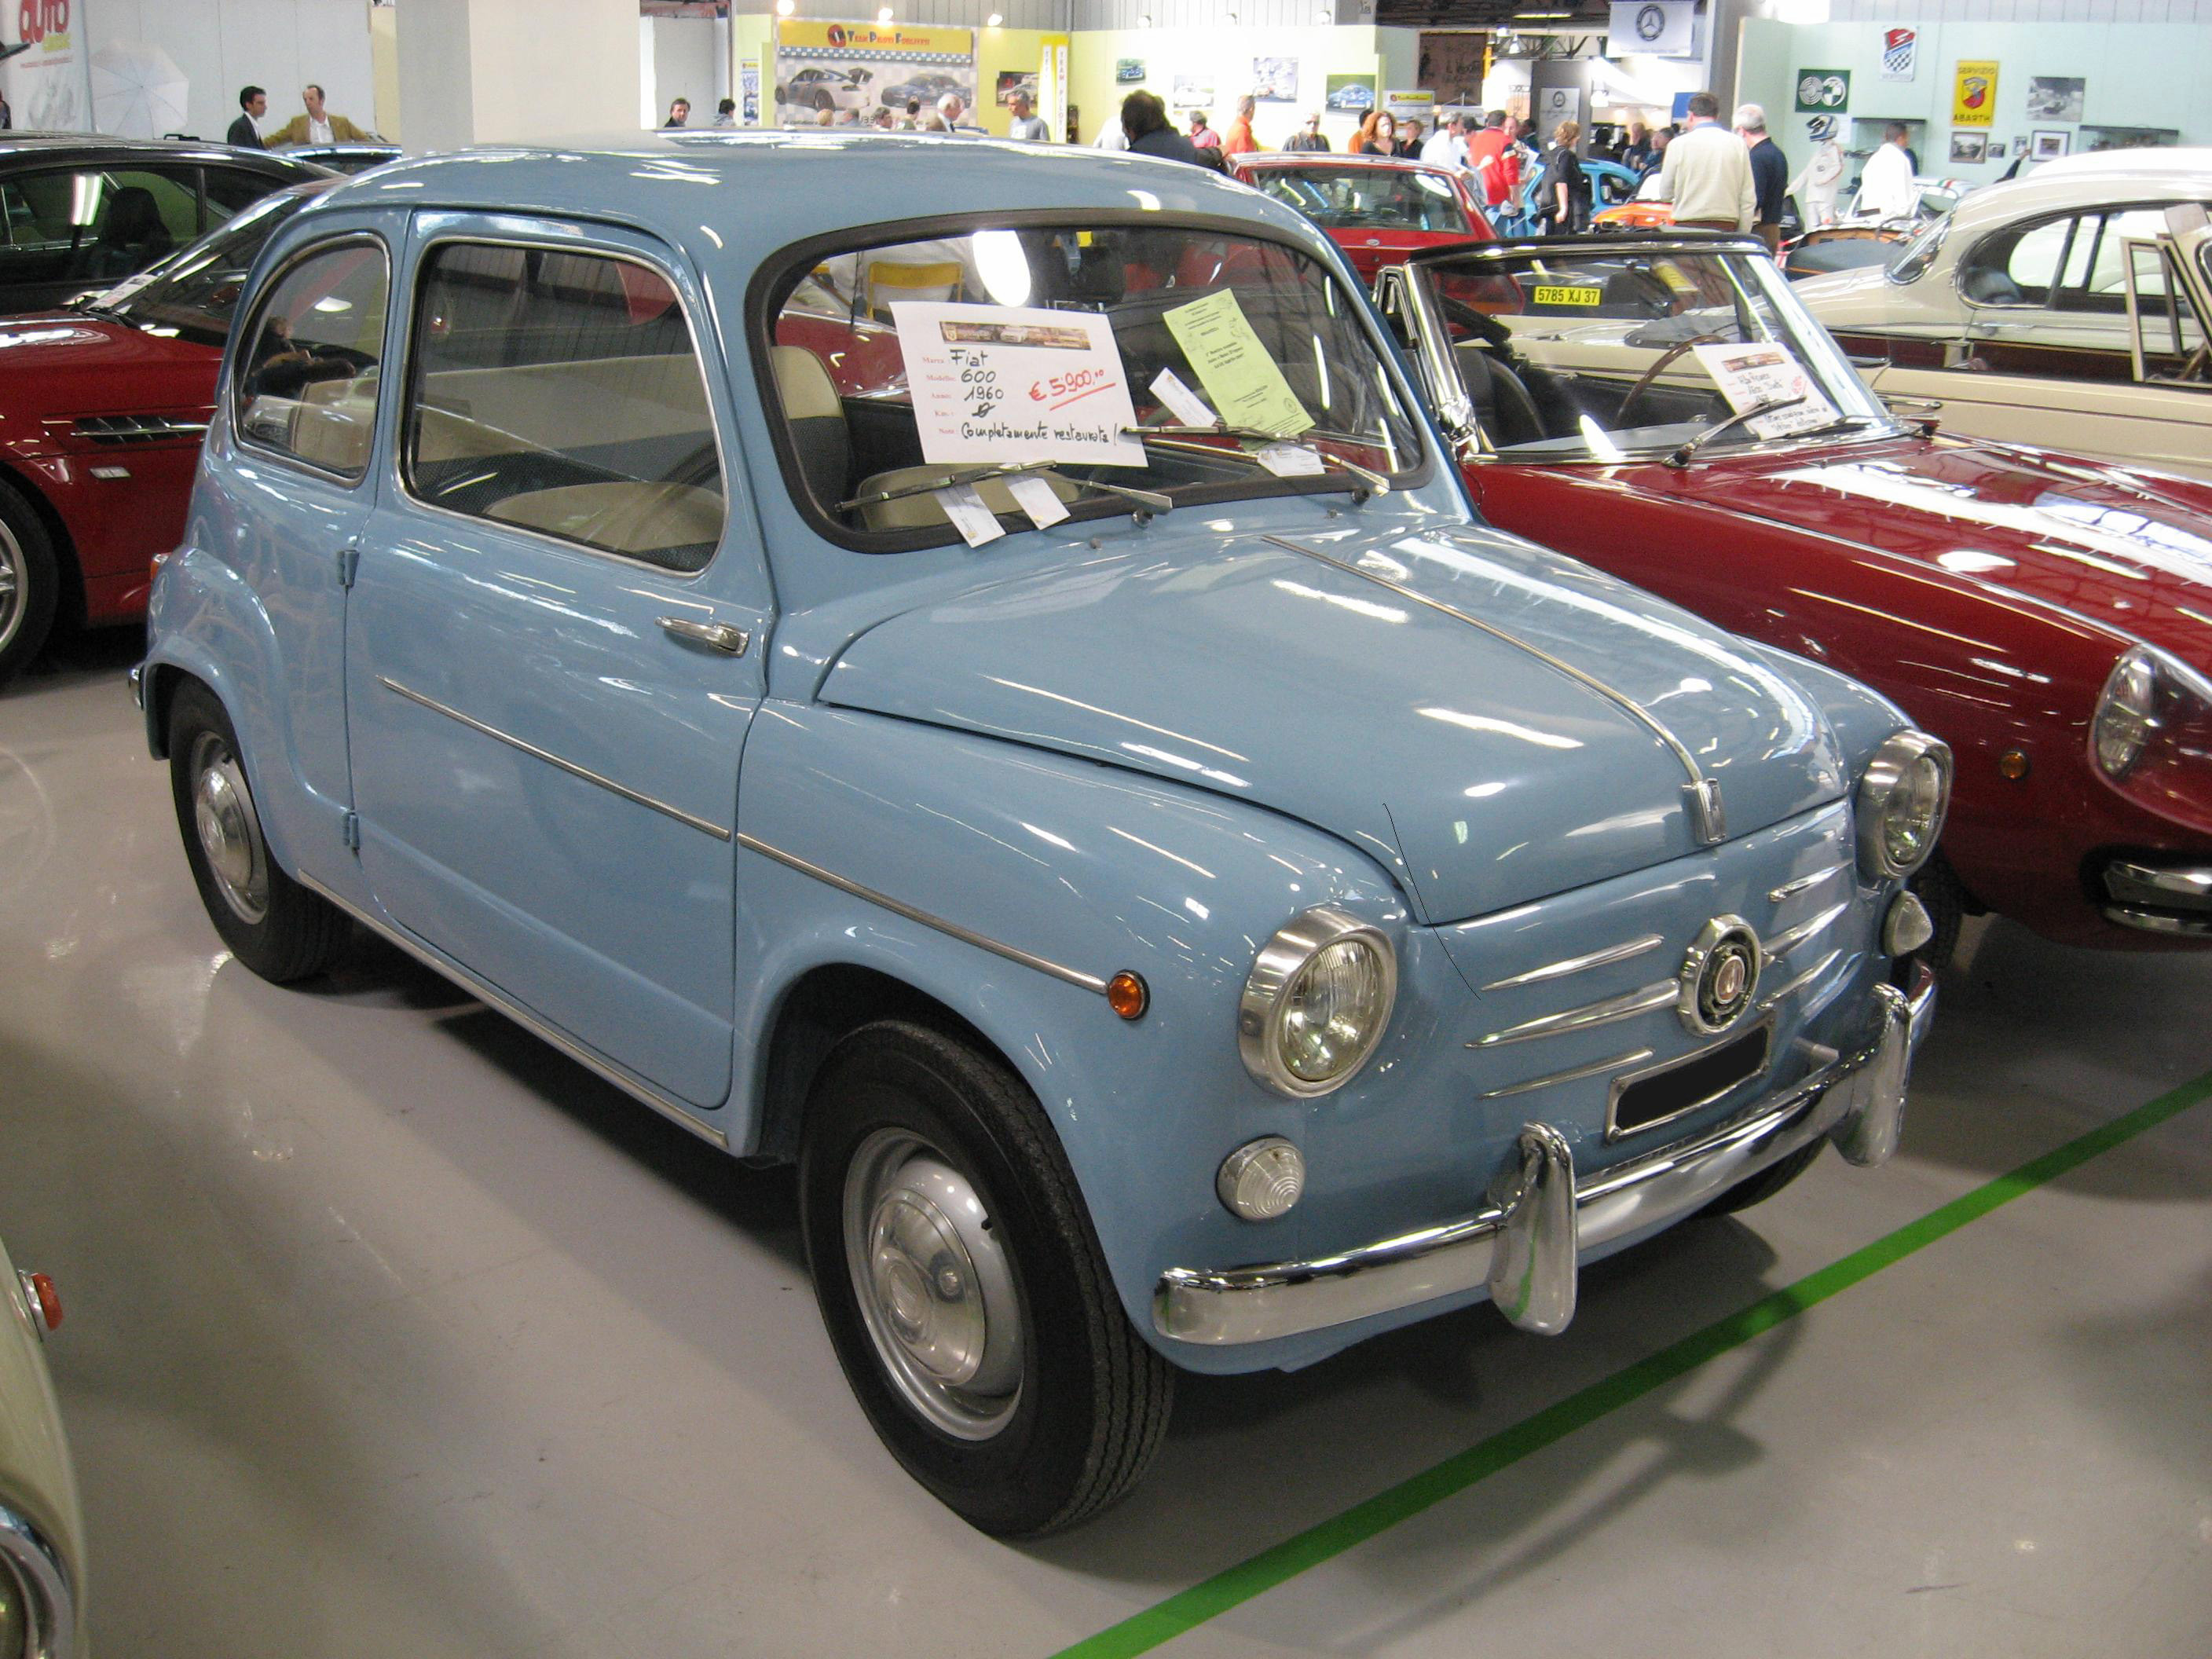 File:Fiat 600 third series of 1960 at oldtimer show in Forli (Italy